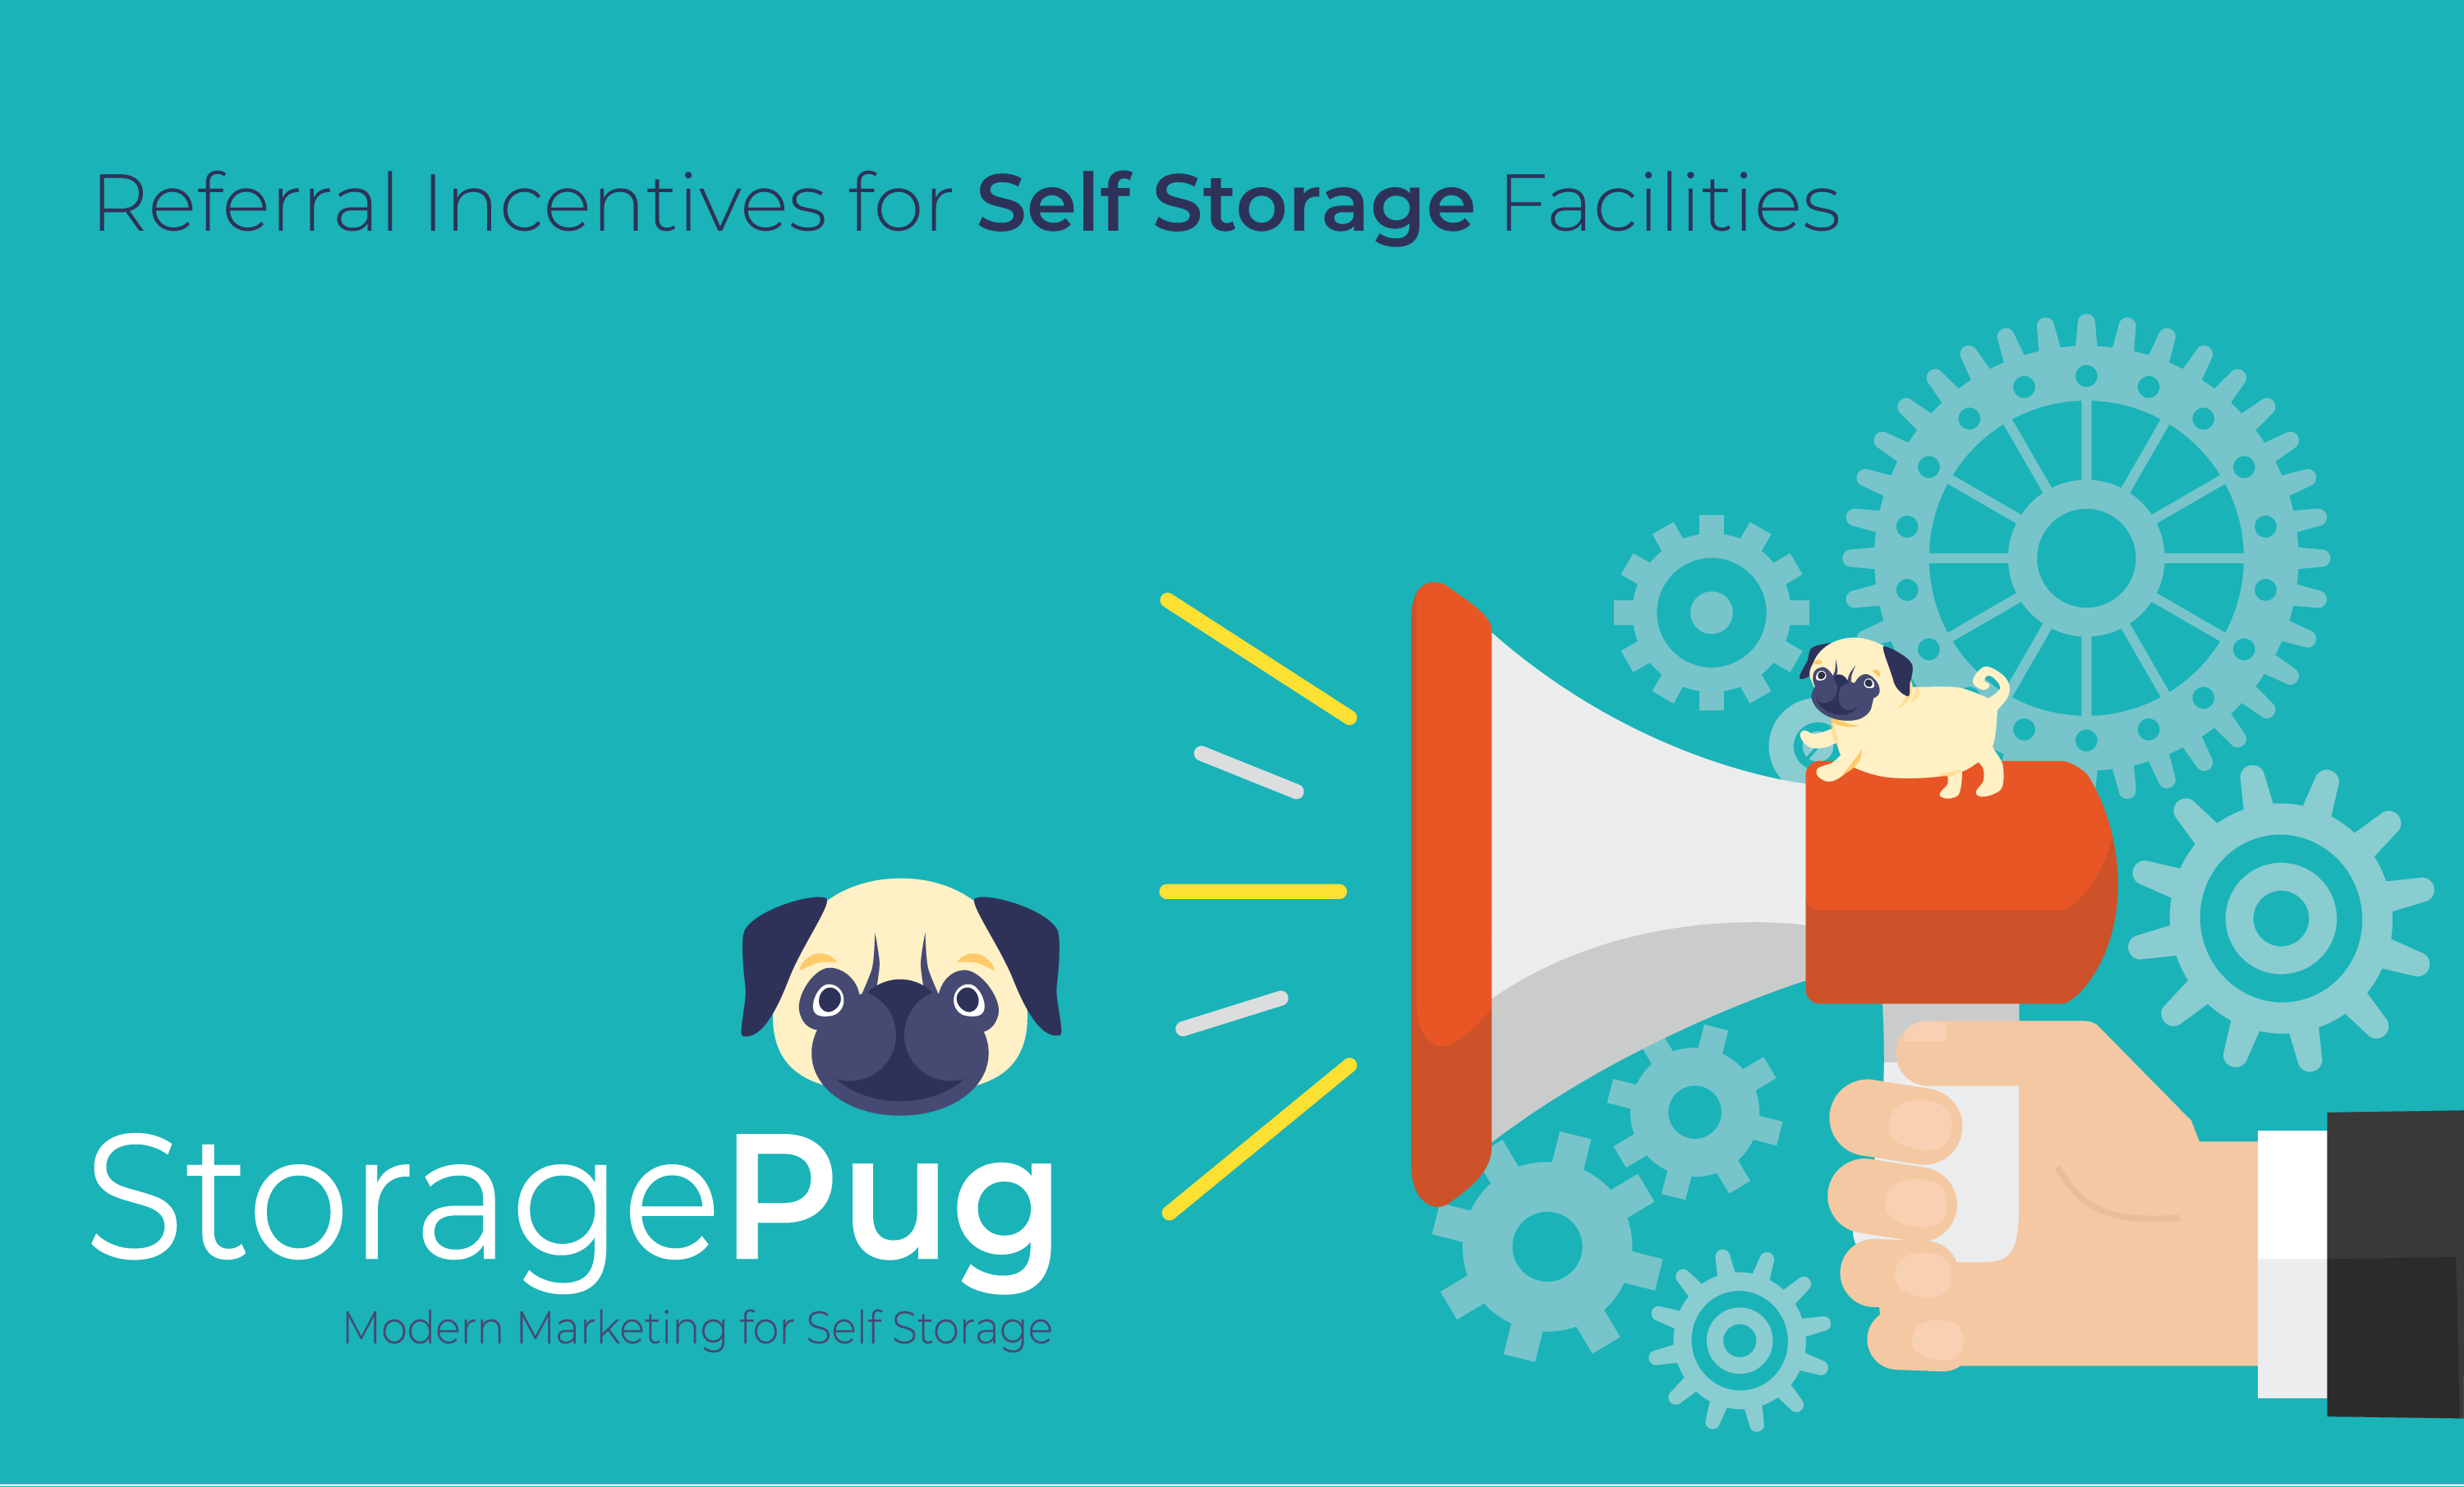 Referrals are primarily the results of word-of-mouth from happy tenants of your self storage facility.They test your services and their high level of satisfaction compels them to recommend you to their social circle.